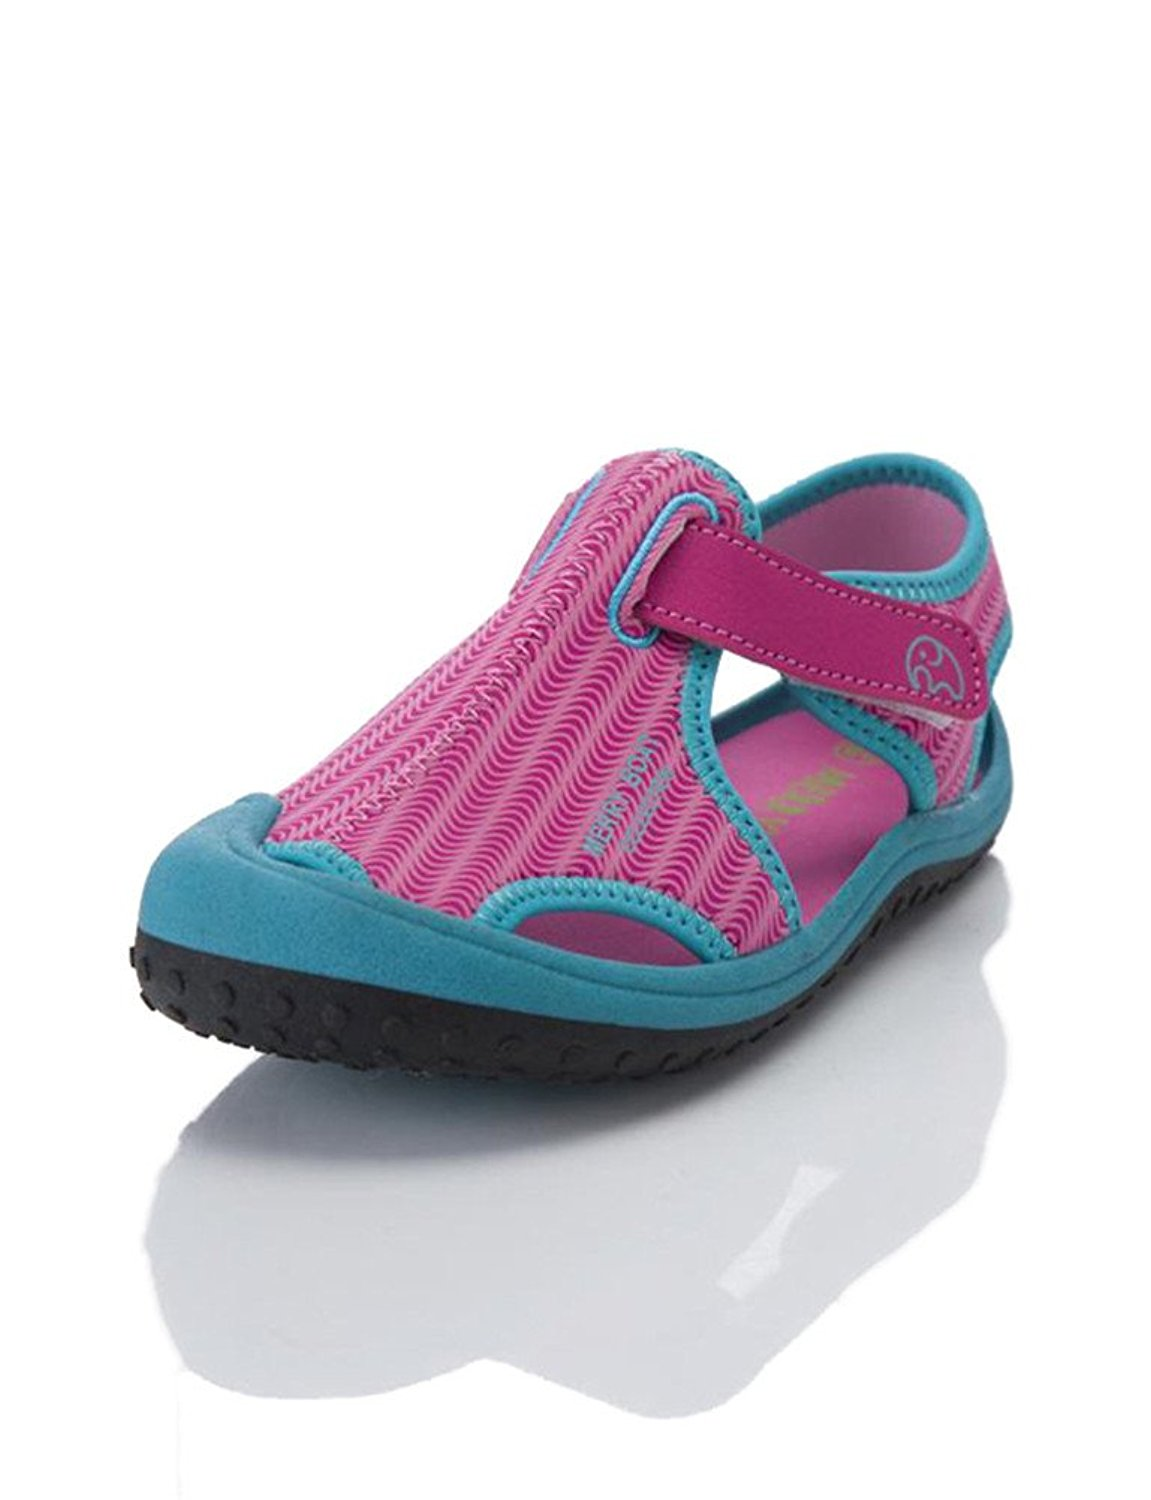 efa4c29a6569f8 HILEELANG Kids Boy Girl Aquatic Water Shoe Closed Toe Light Weight Comfort  Beach Sandals (Toddler